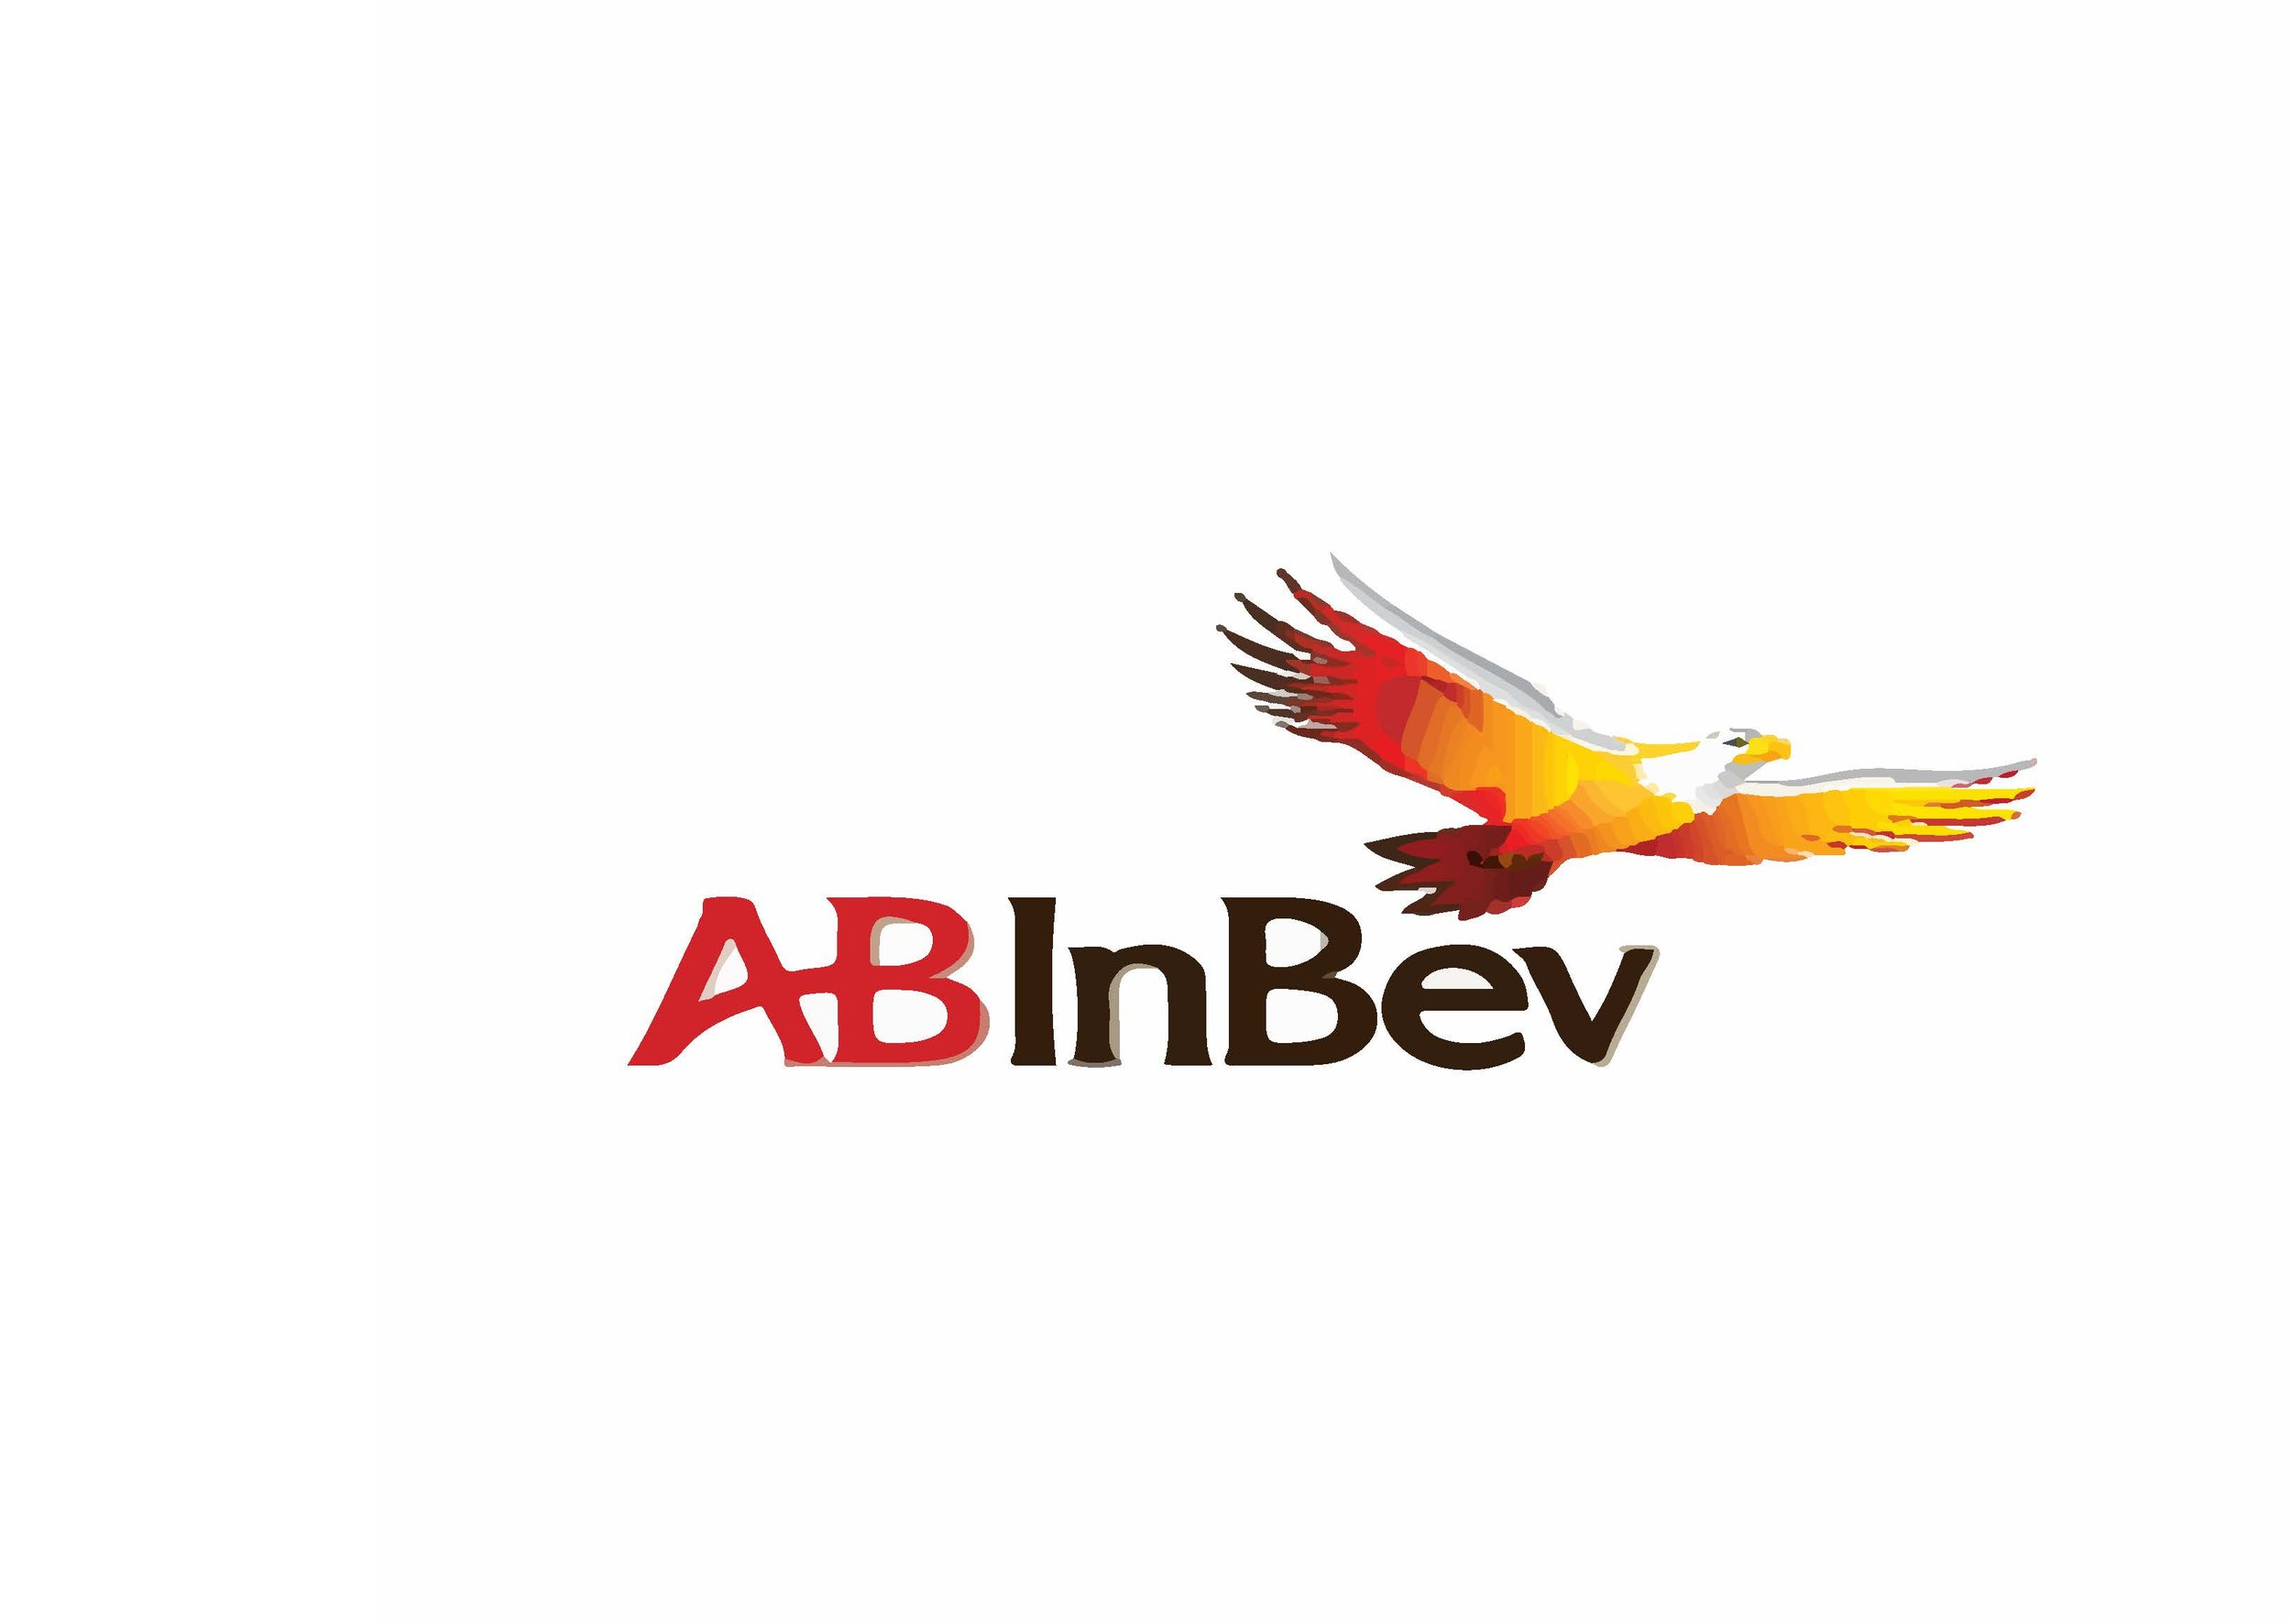 hOW WE POWER ab-iNbev - Hiring Managers can figure out if a new manager is having a negative impact on an employees behavior, engagement and performance vs. their own attribution. This helps managers decide how to create the best teams, and hire the people who fit best in their company culture.